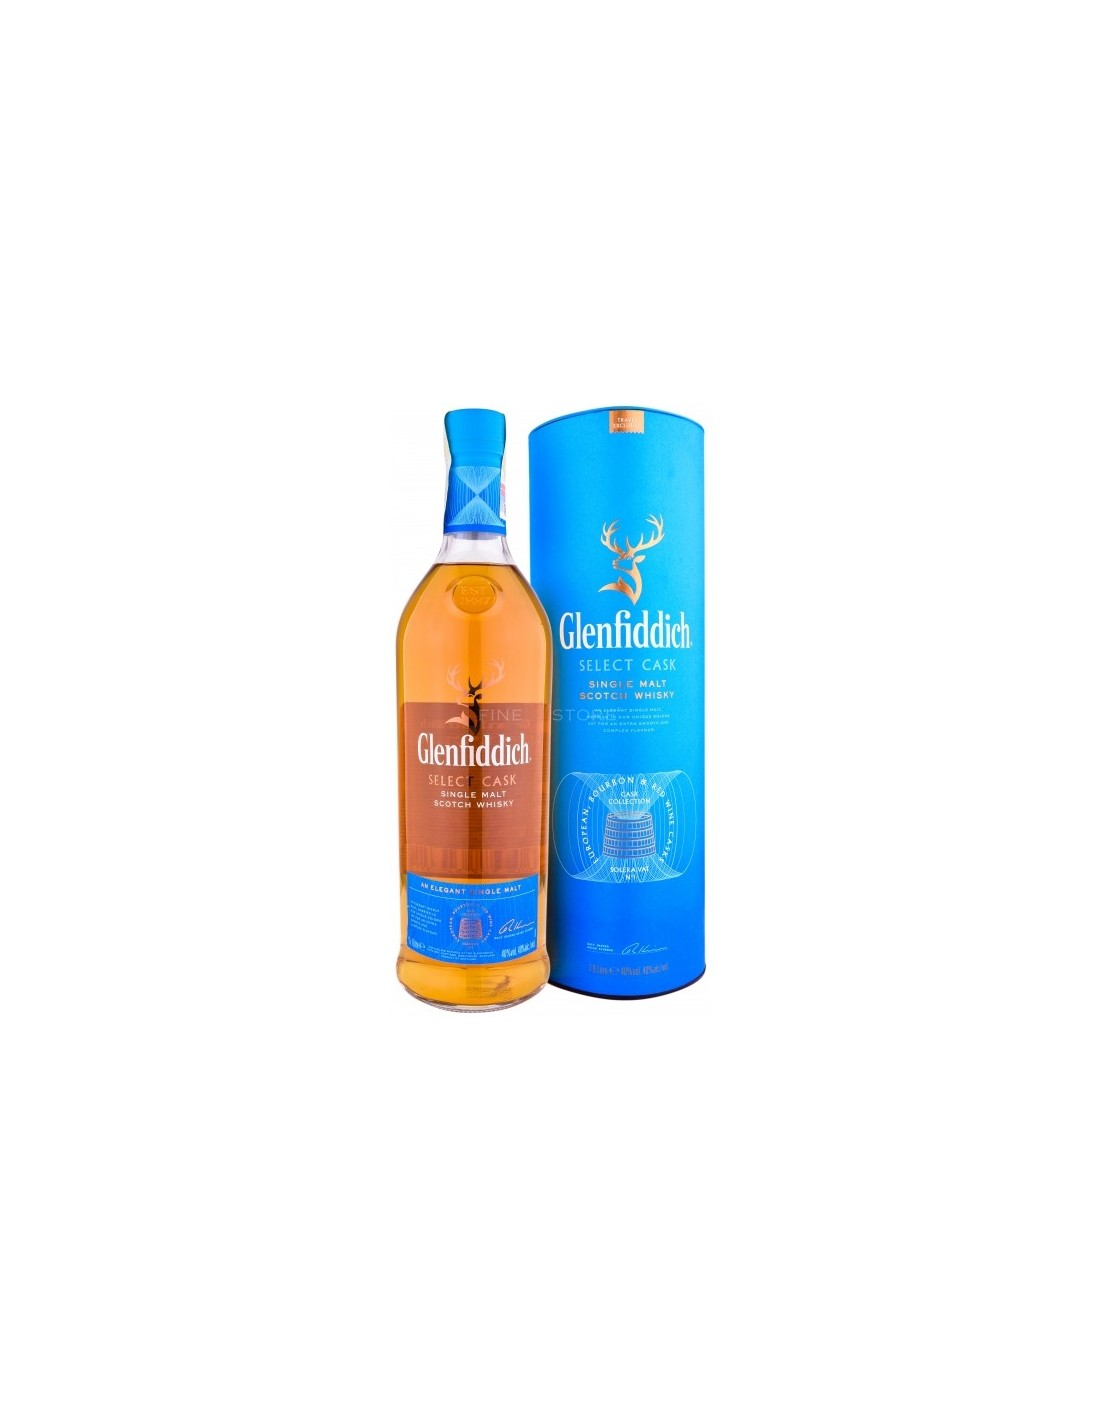 Whisky Single Malt Glenfiddich Select Cask, 40% alc., 1L, Scotia